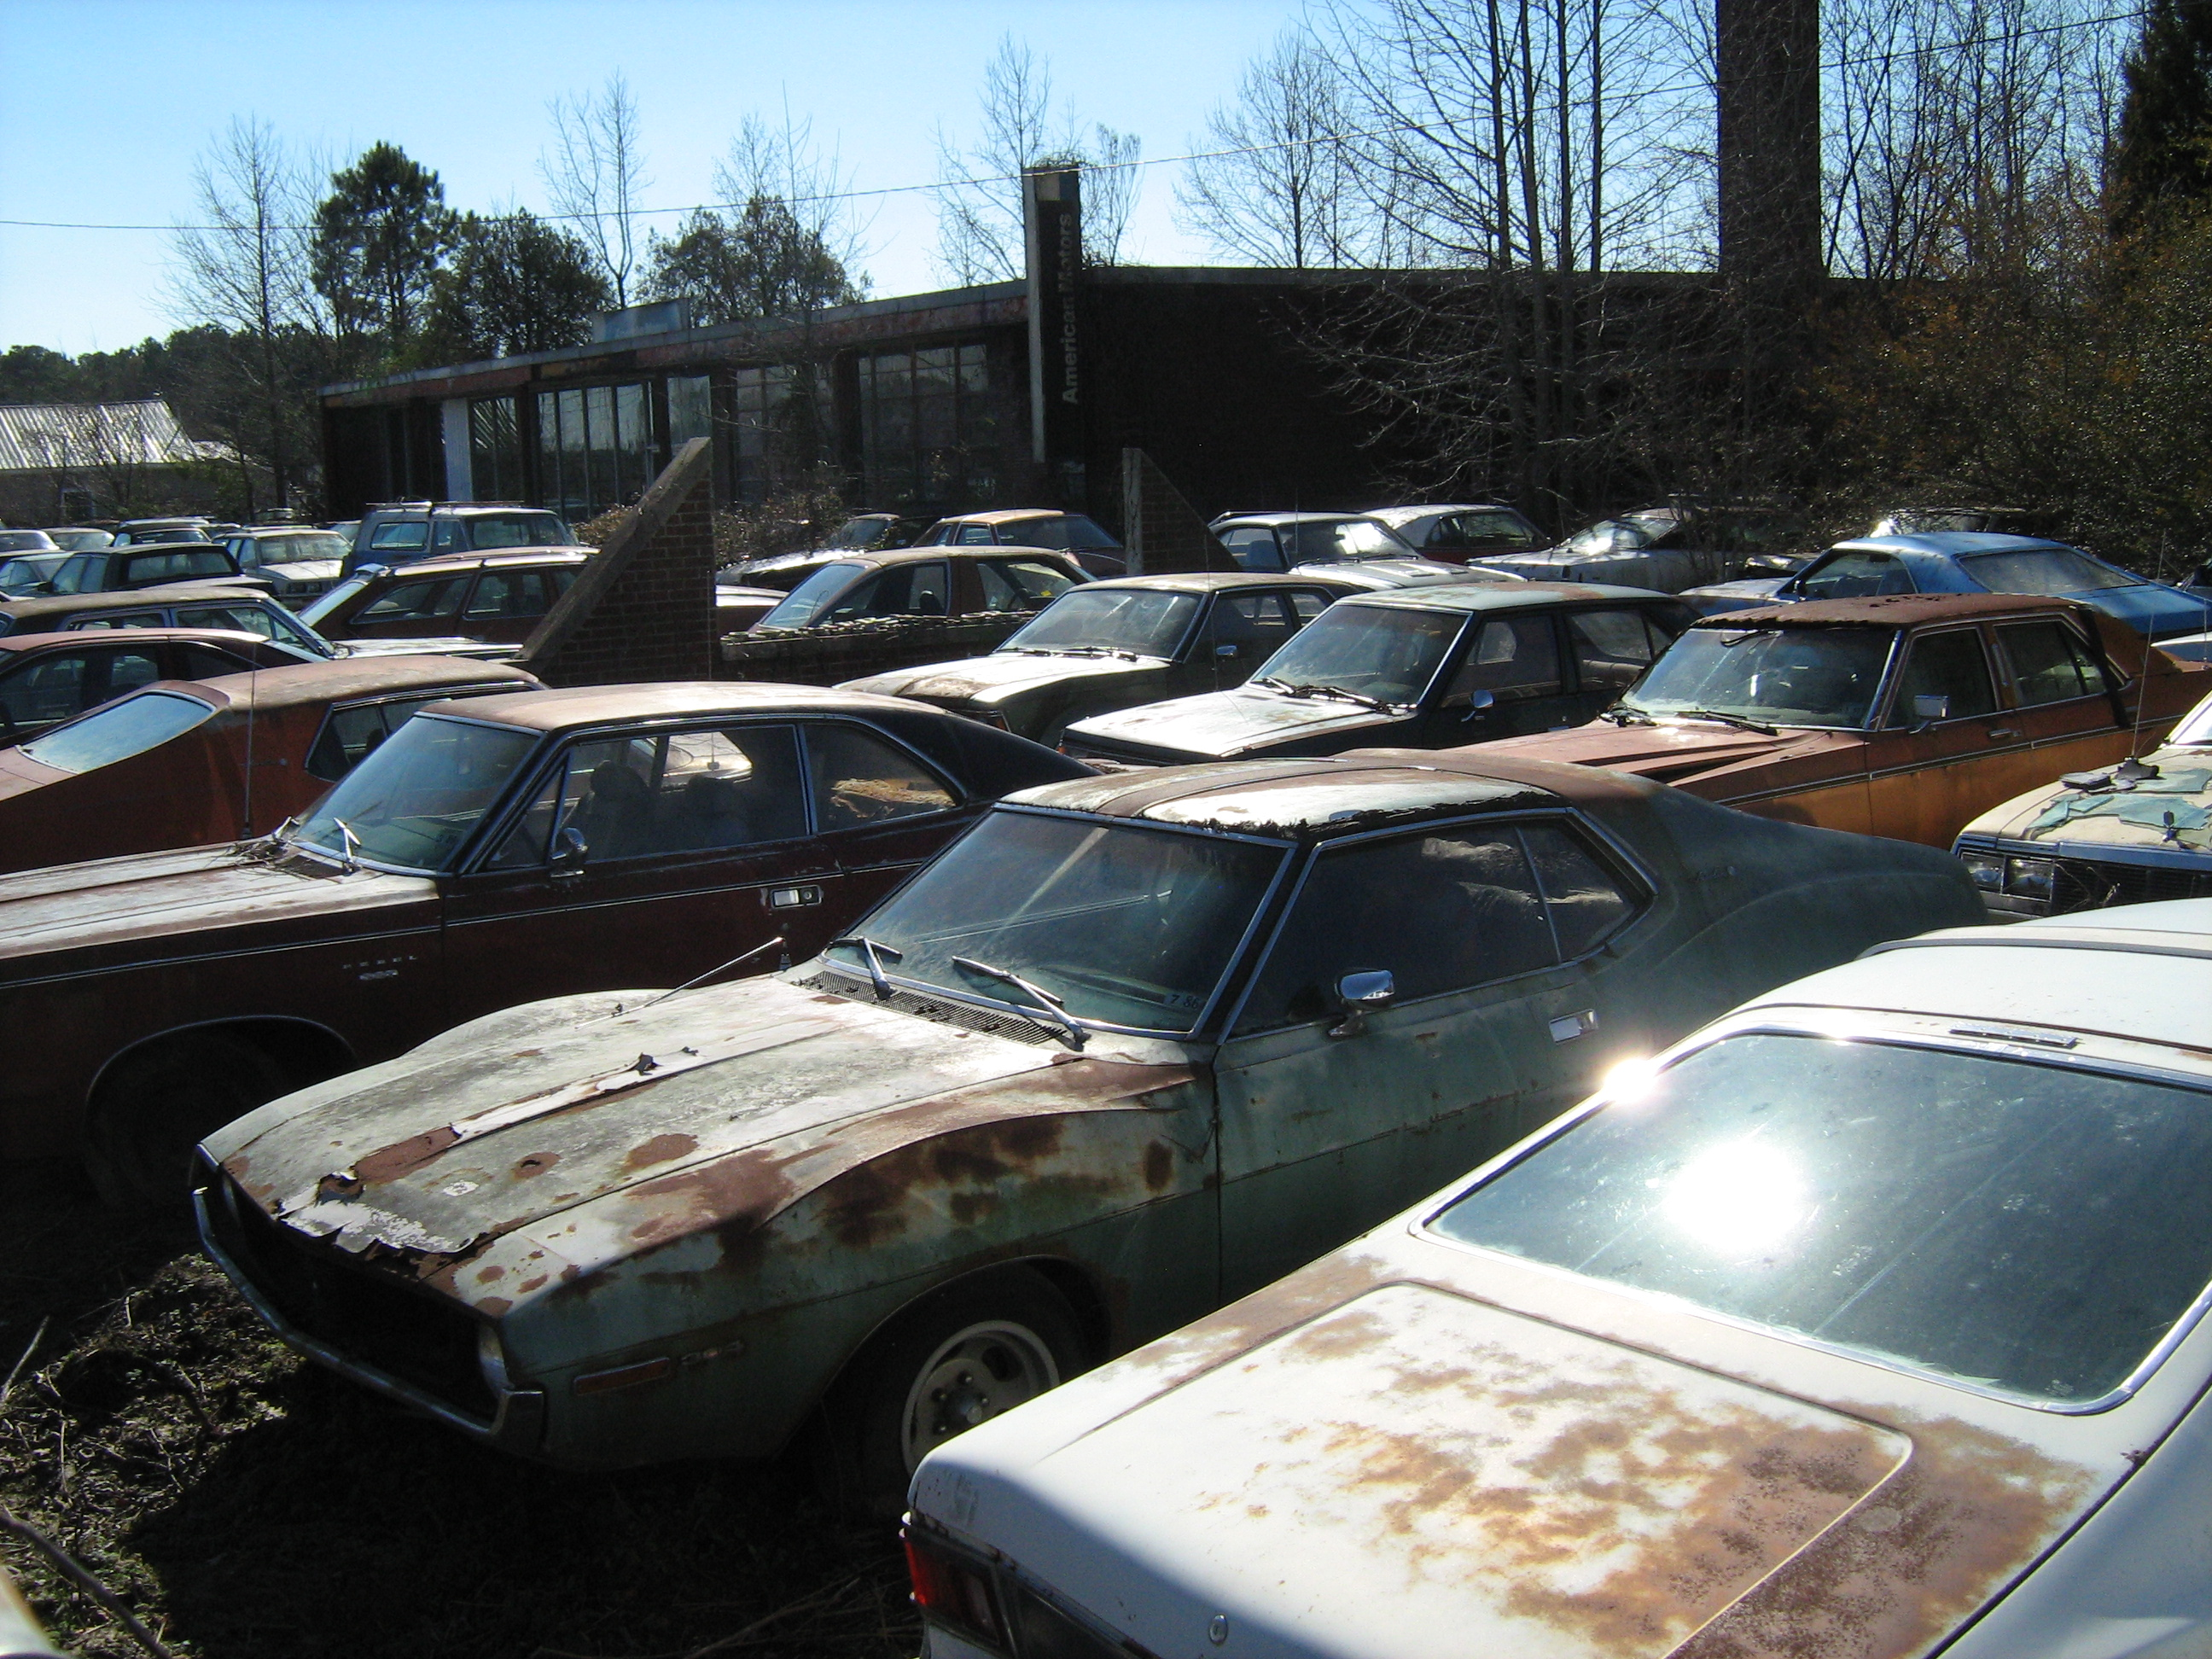 American Pickers Pikeville Nc collier motors - wikipedia